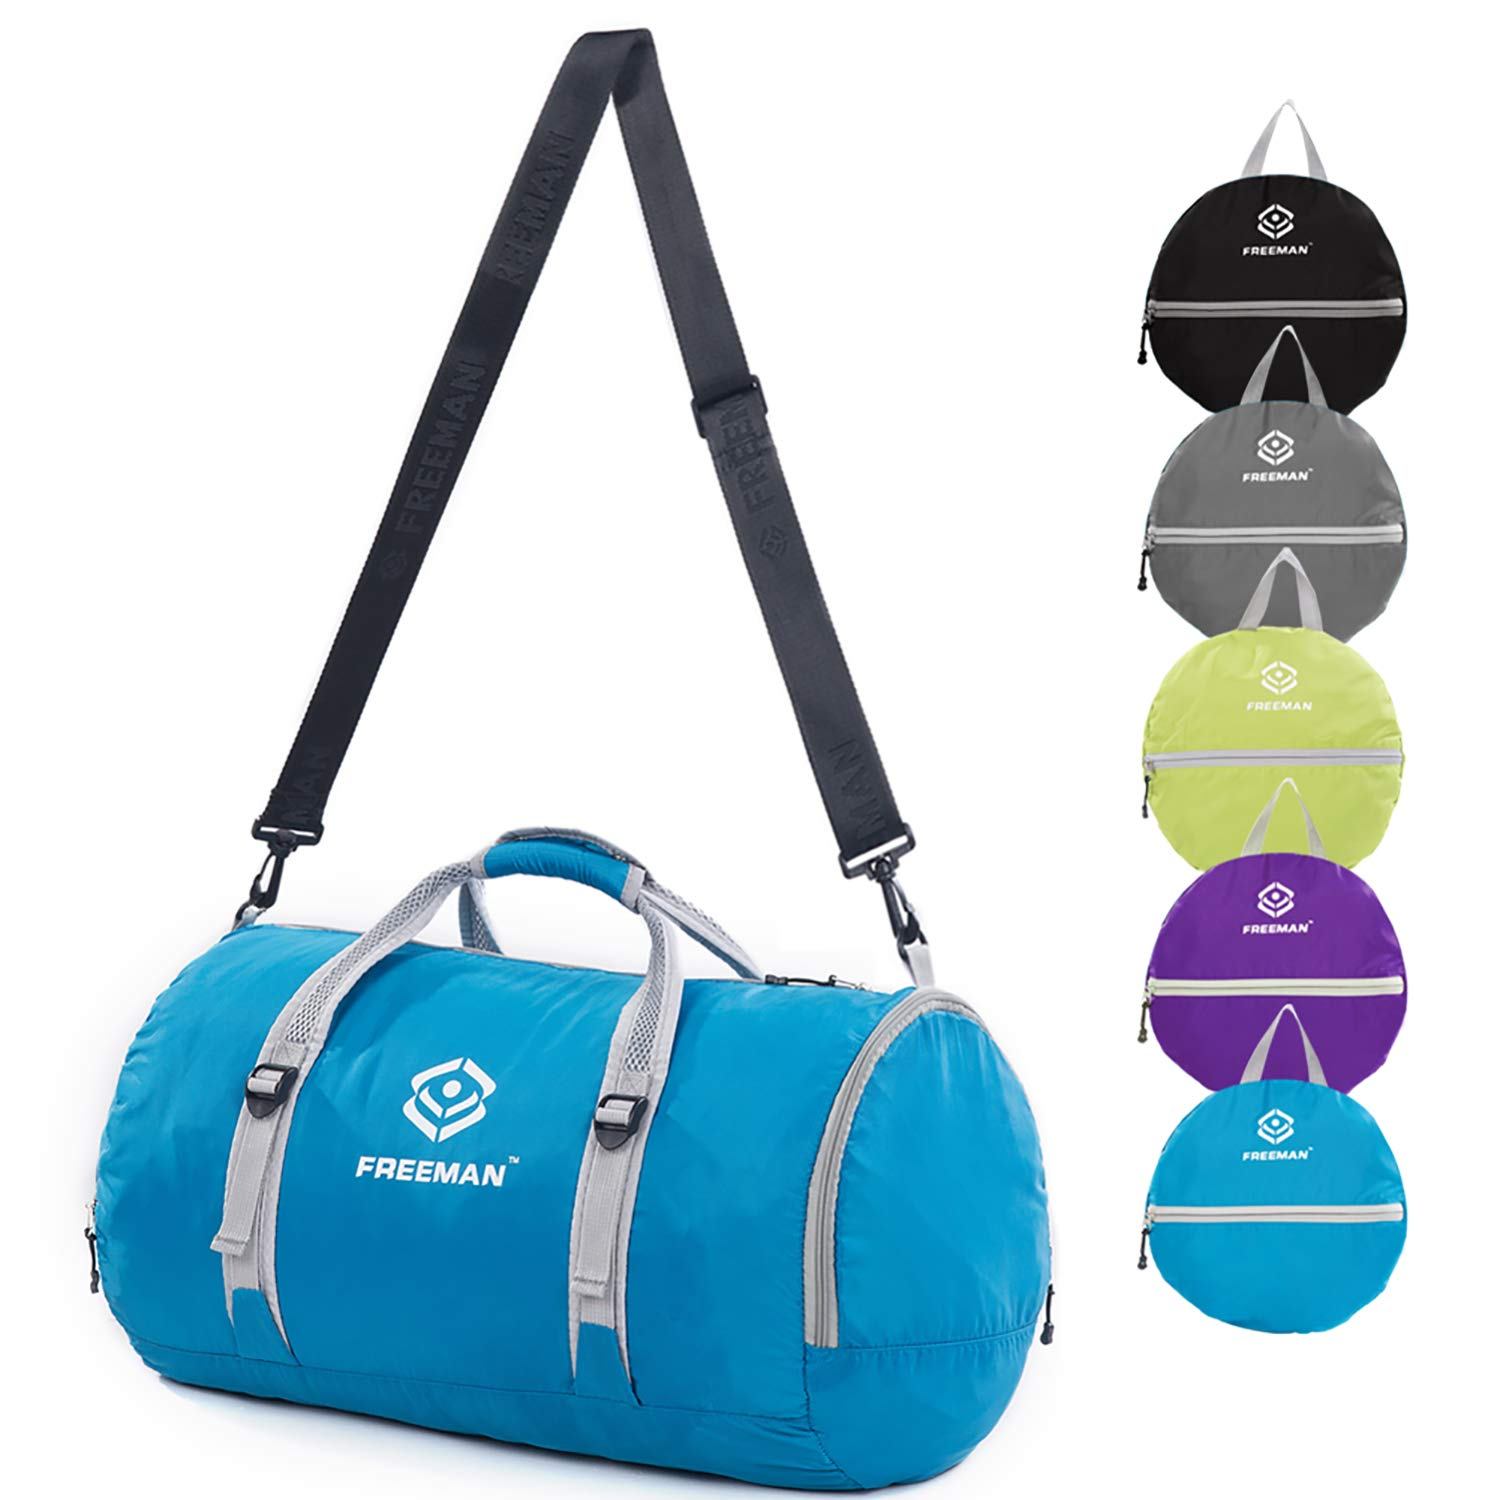 YOULERBU 40L Foldable Travel Duffel Bag, Sports Gym Bag with Shoes Compartment, Lightweight Water Resistant Compact Luggage Duffel for Men and Women